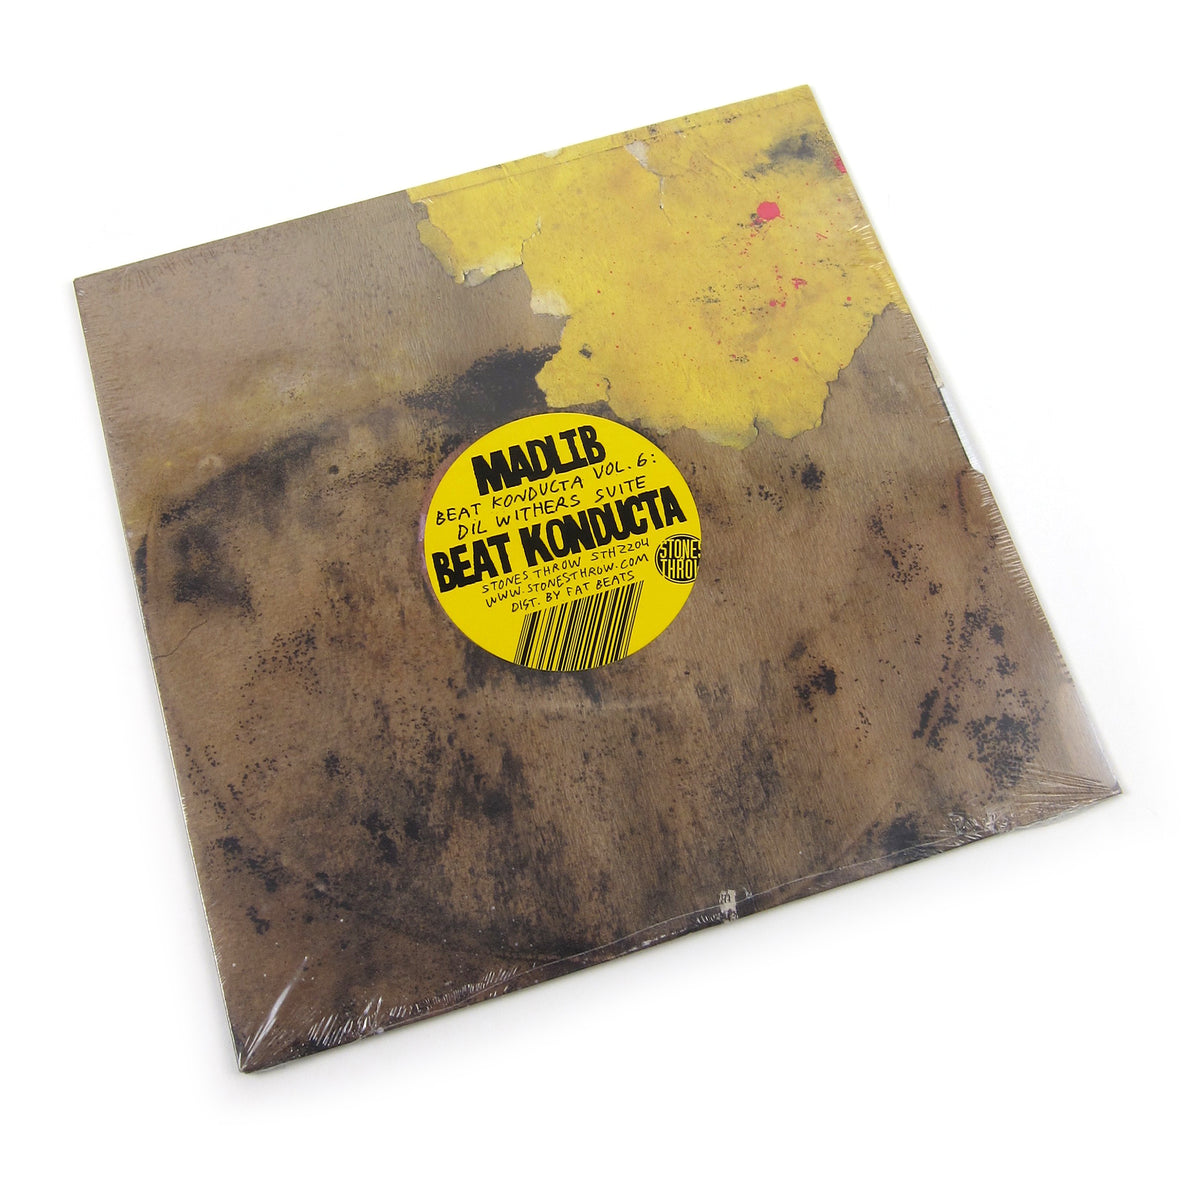 Madlib: Beat Konducta, Vol.6: Dil Withers Suite LP